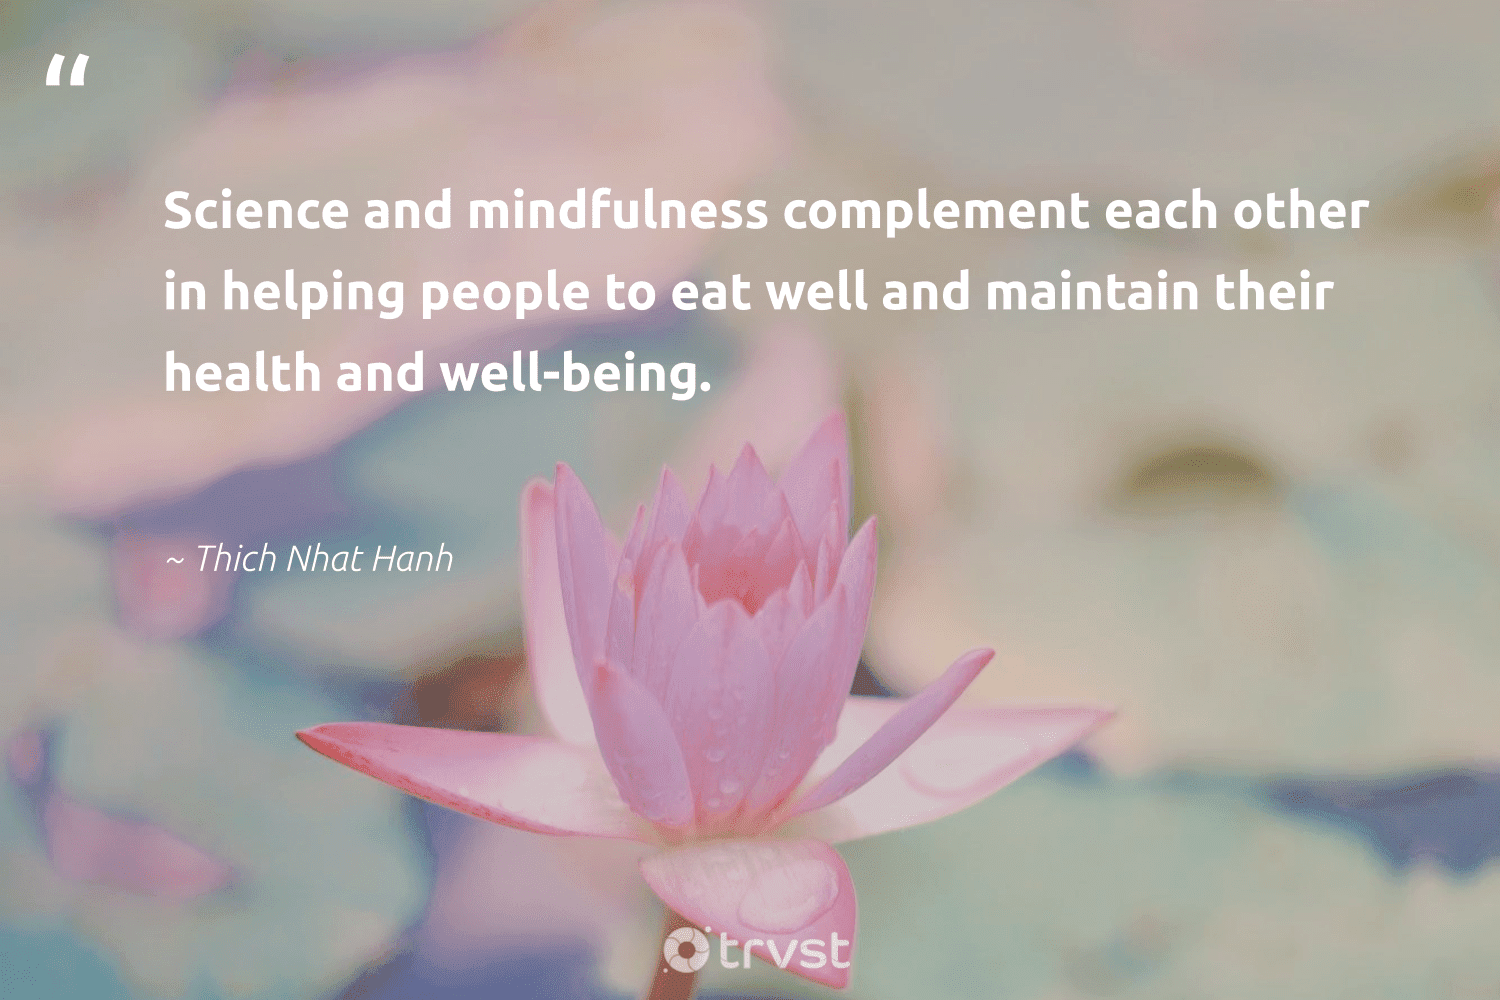 """""""Science and mindfulness complement each other in helping people to eat well and maintain their health and well-being.""""  - Thich Nhat Hanh #trvst #quotes #science #health #wellbeing #mindfulness #research #mindset #biology #gogreen #happiness #natural"""